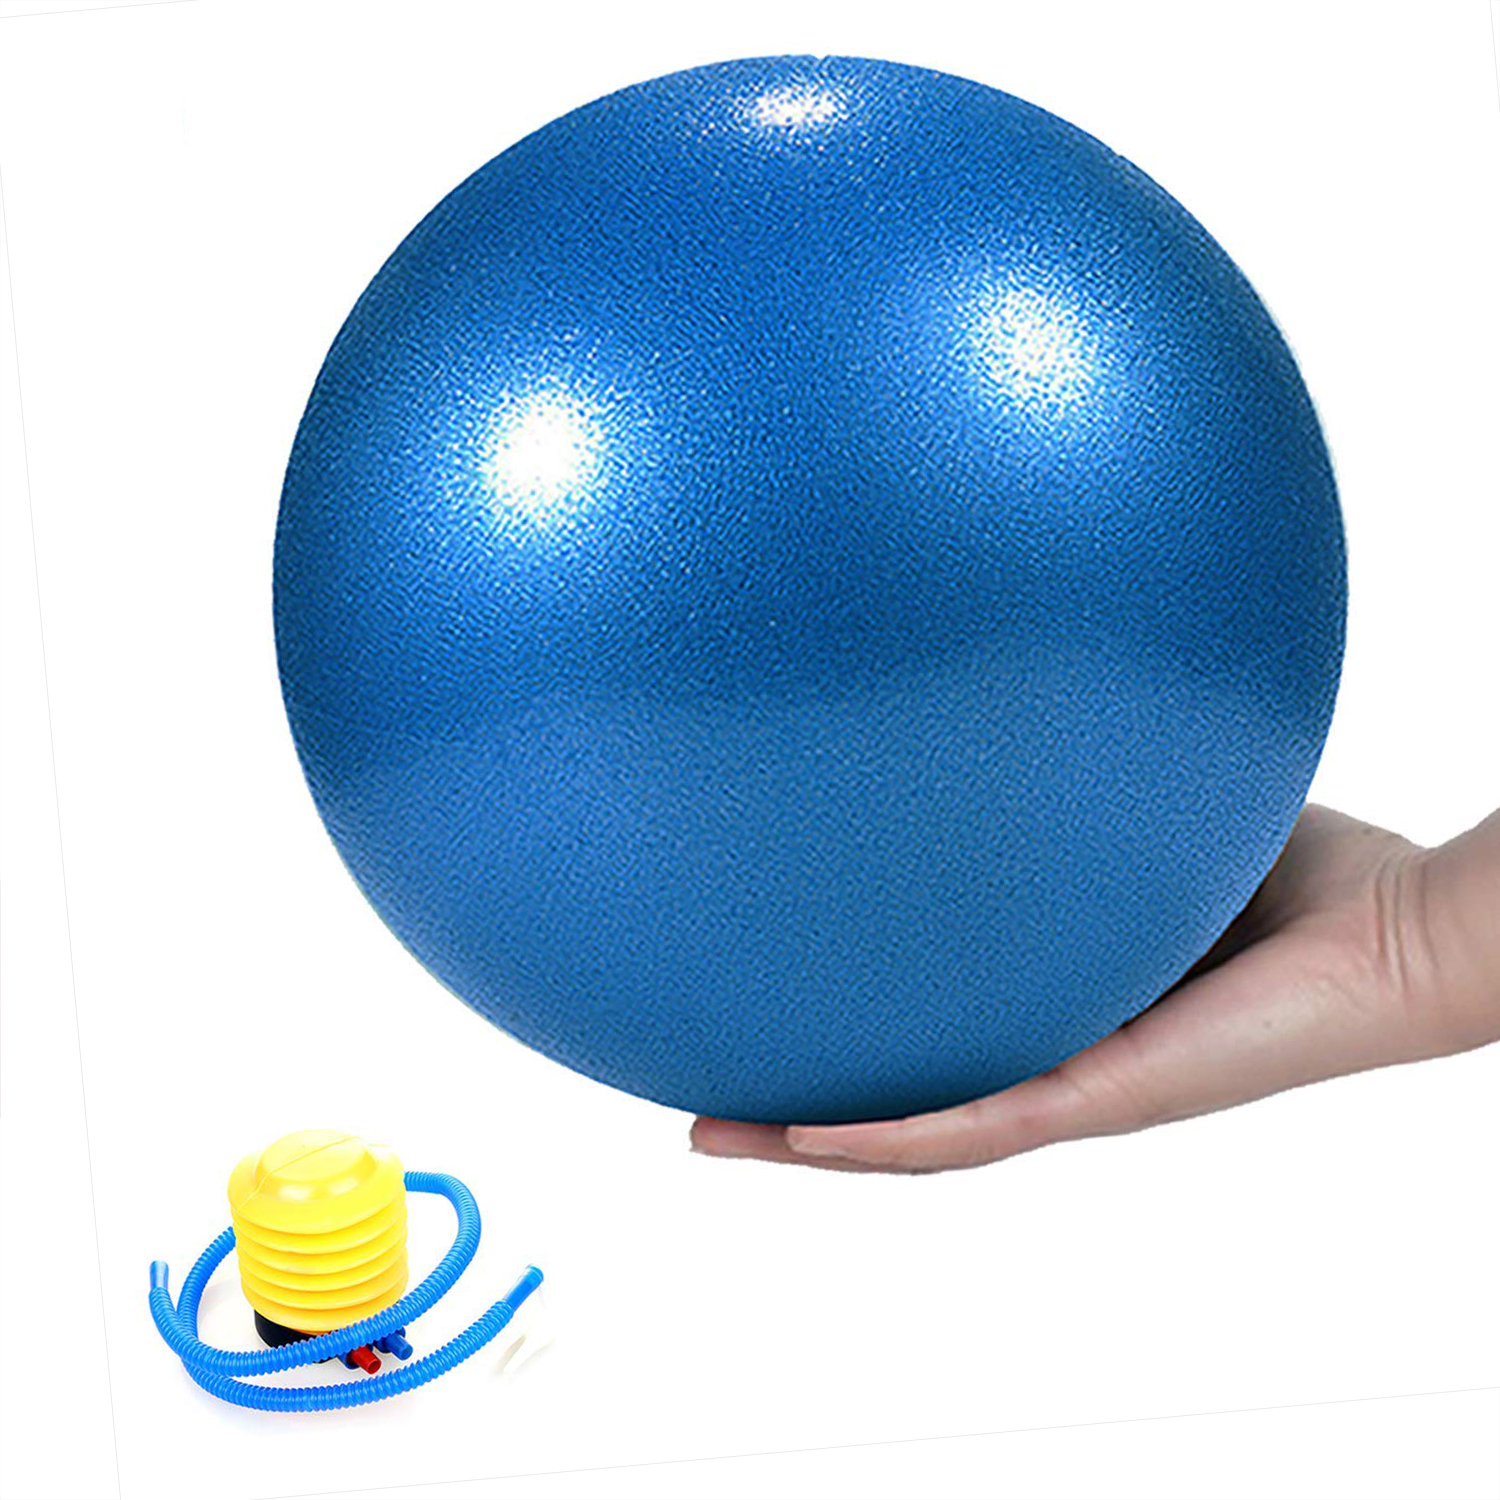 Reactionnx 9 Inch Small Bender Ball for Pilates Barre ...